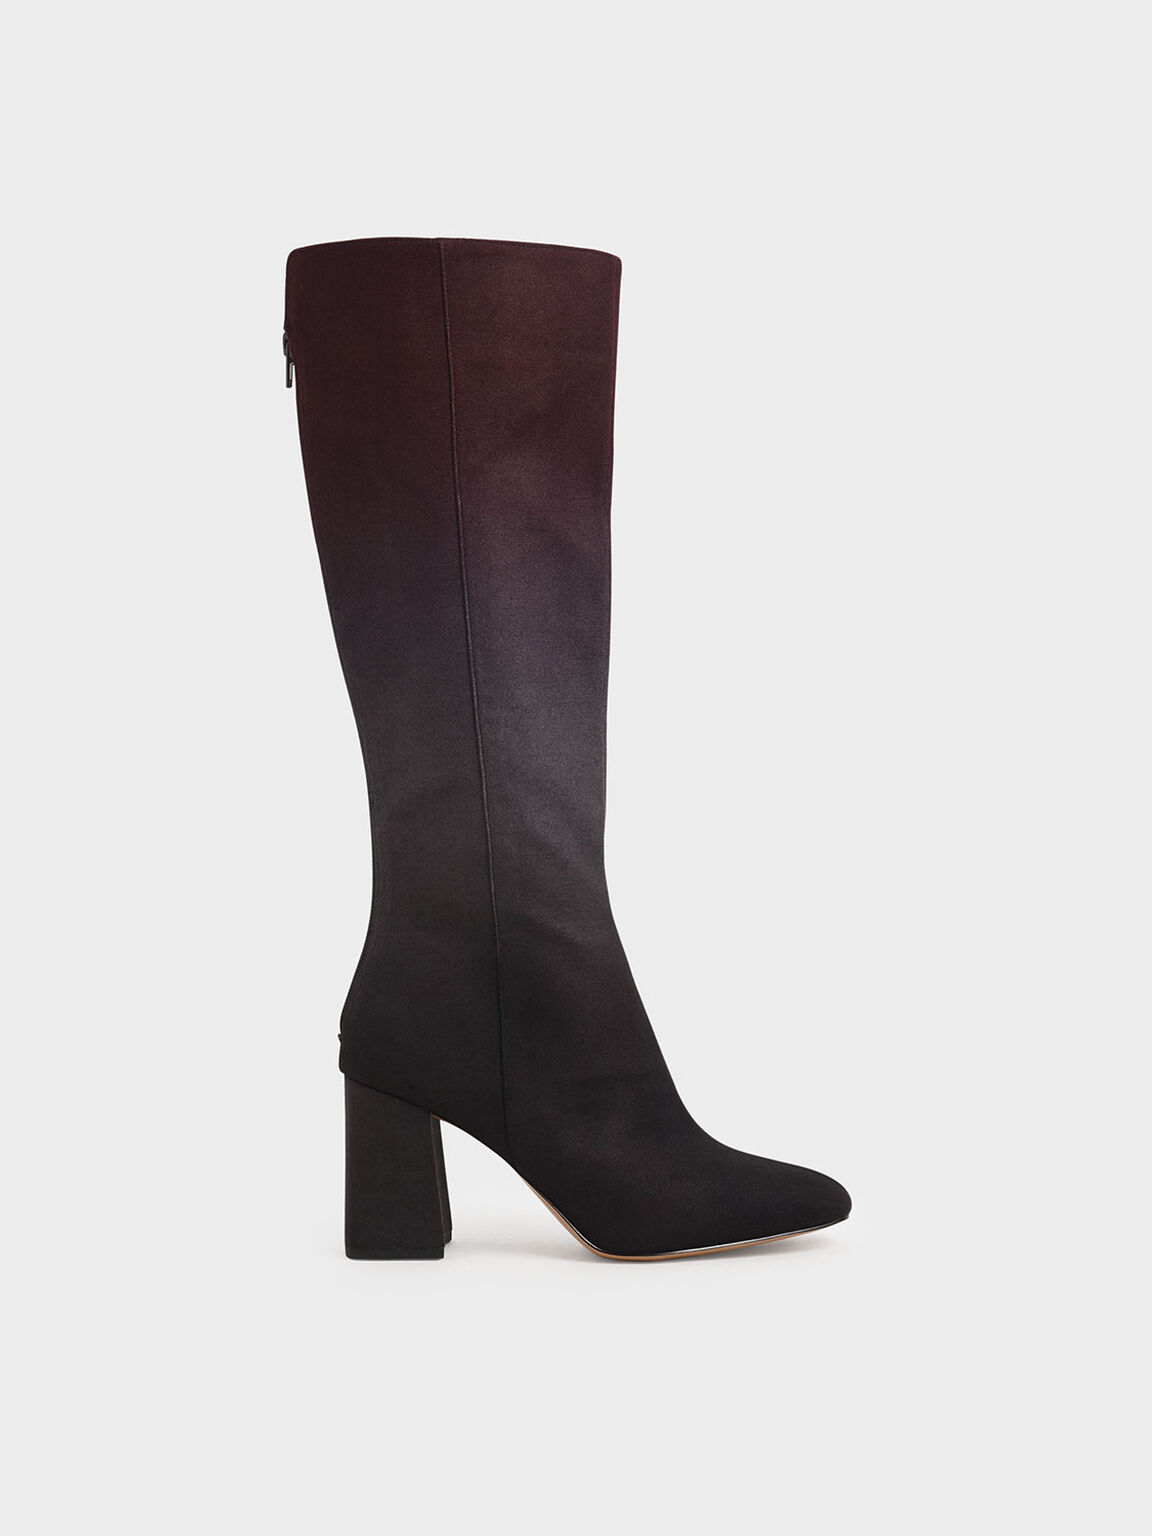 Multicoloured Felt Knee High Boots, Burgundy, hi-res